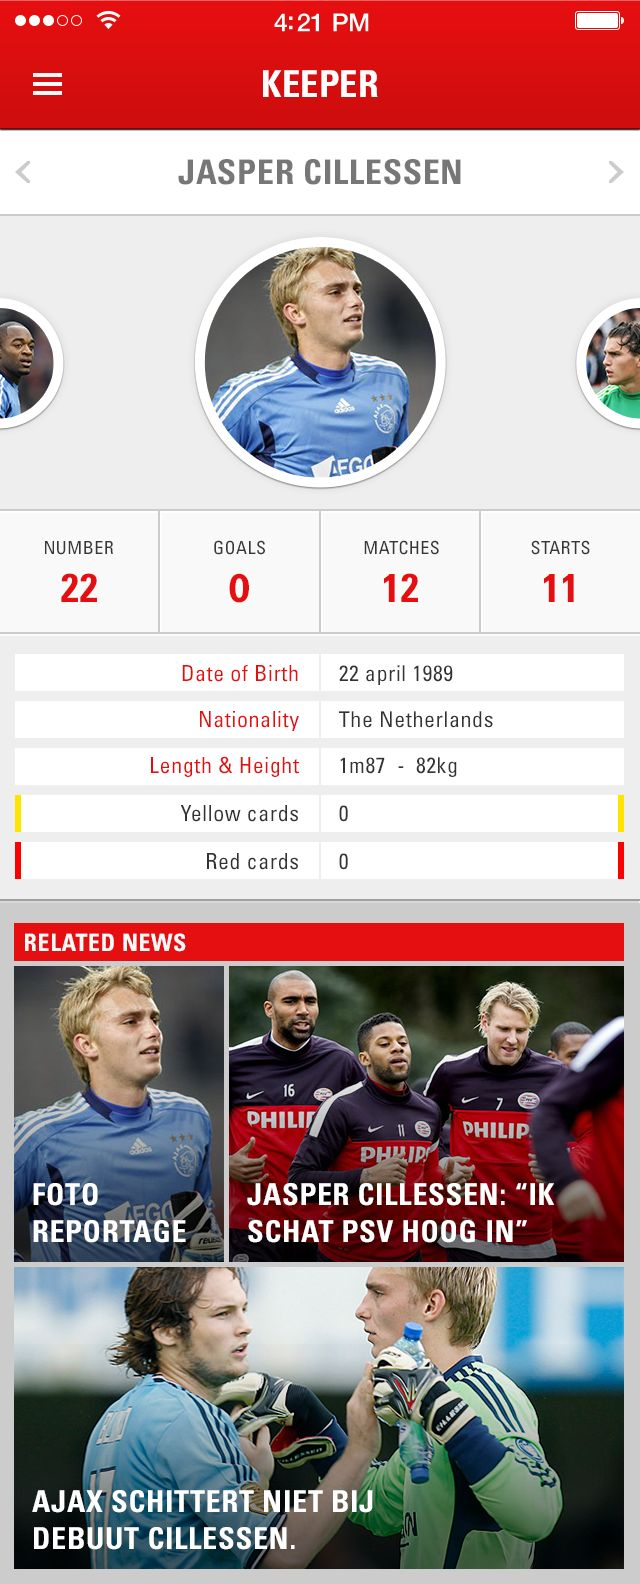 Player-profile soccer iOS App